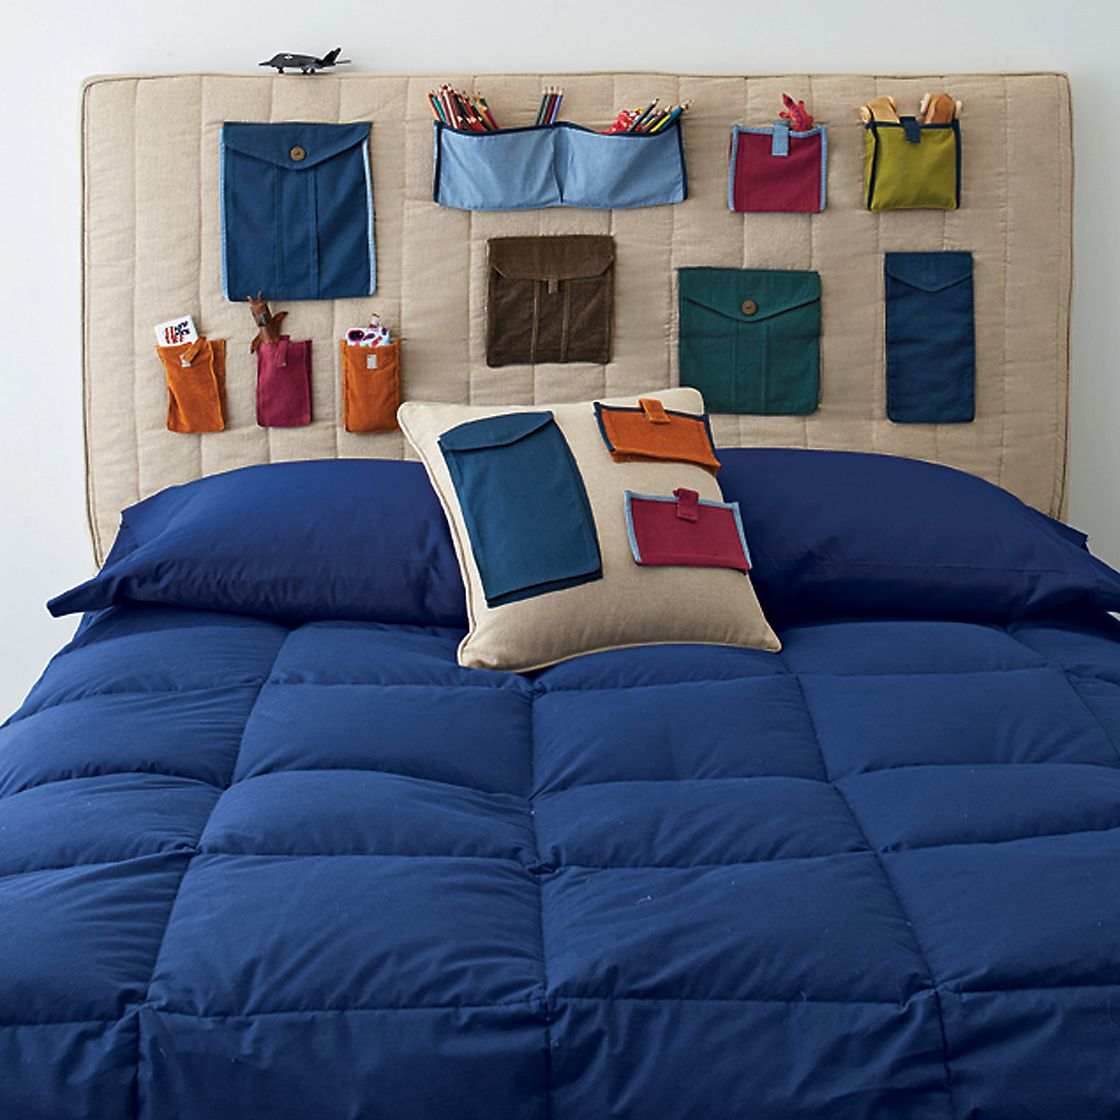 Headboard covers for kids beds company kids for Headboard cover ideas